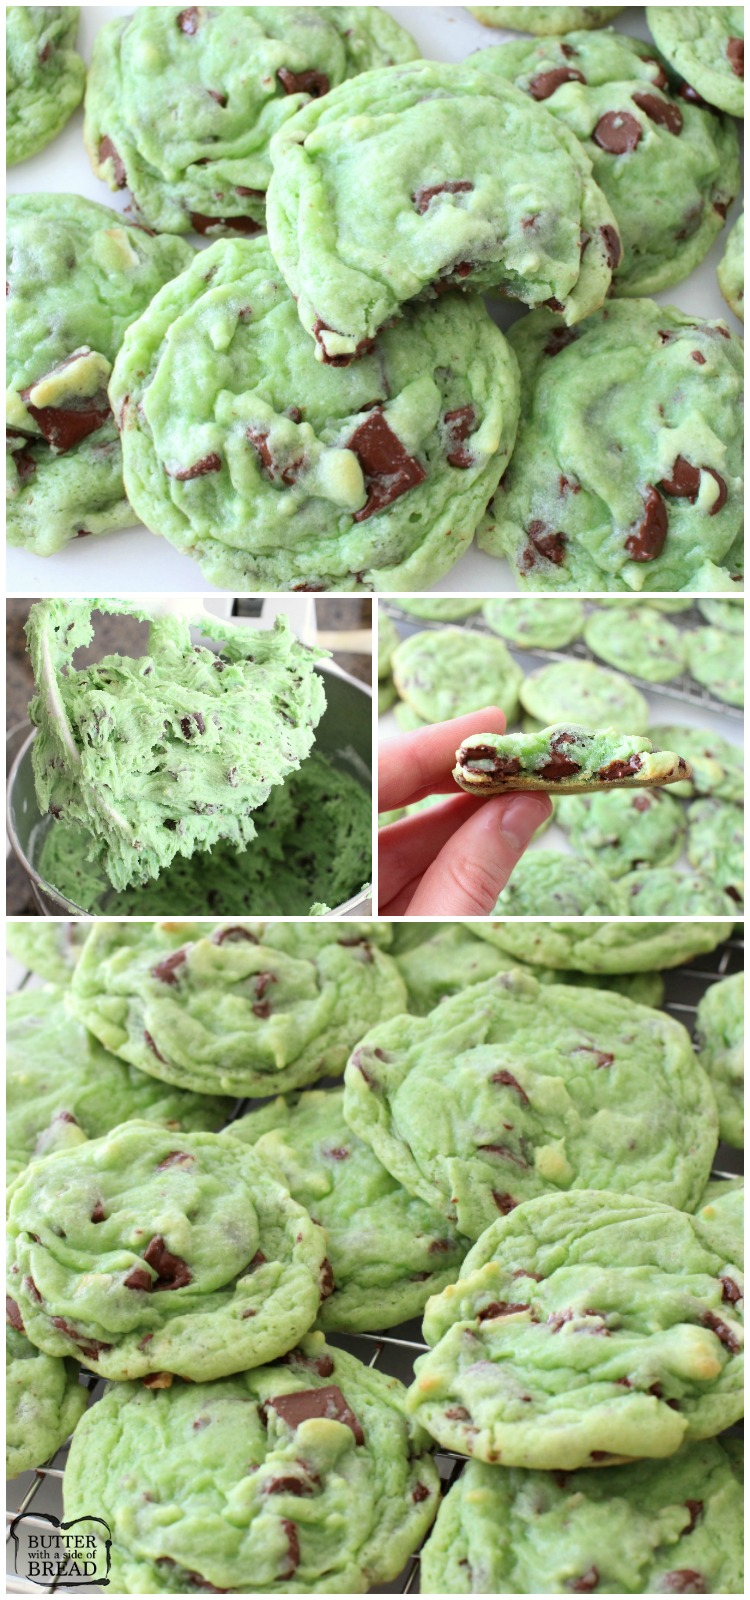 Mint Chocolate Chip Cookies made with pudding mix, mint extract & chocolate chips. Lovely cookie recipe perfect for those who love mint chip ice cream! #mint #chocolate #cookies #green #mintchip #dessert #StPatricksDay #dessert